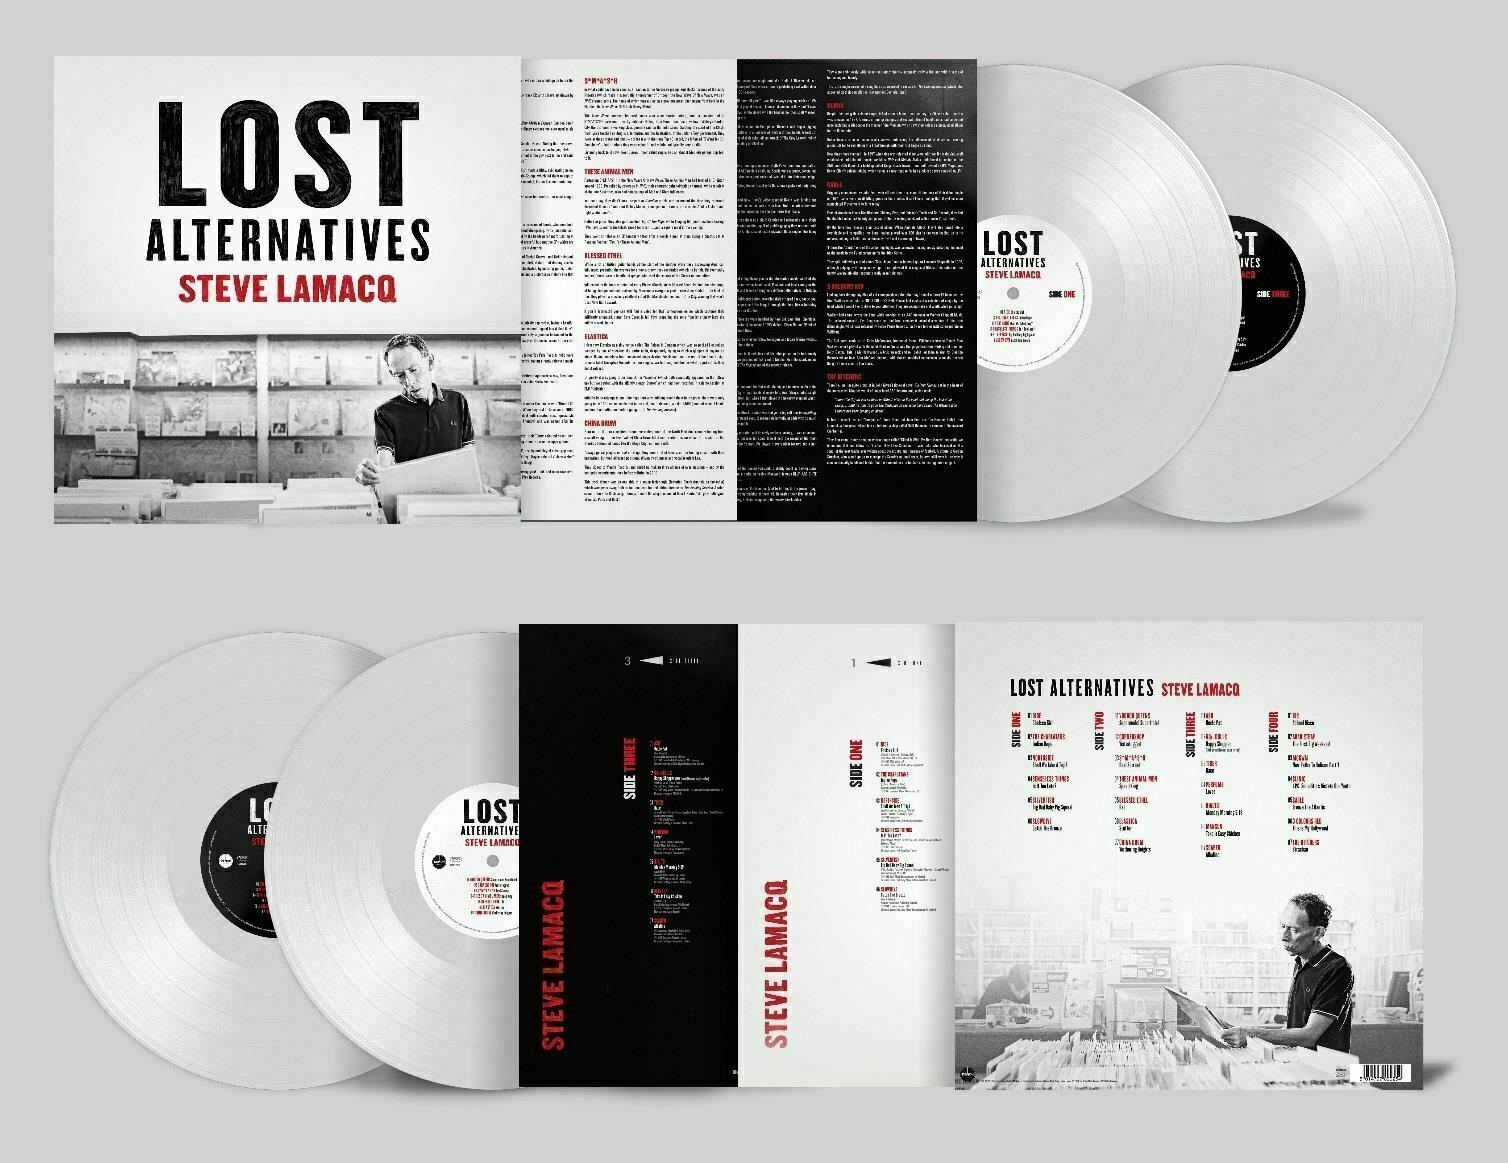 Steve Lamacq - Lost Alternatives RSD19 White Vinyl Limited Edition